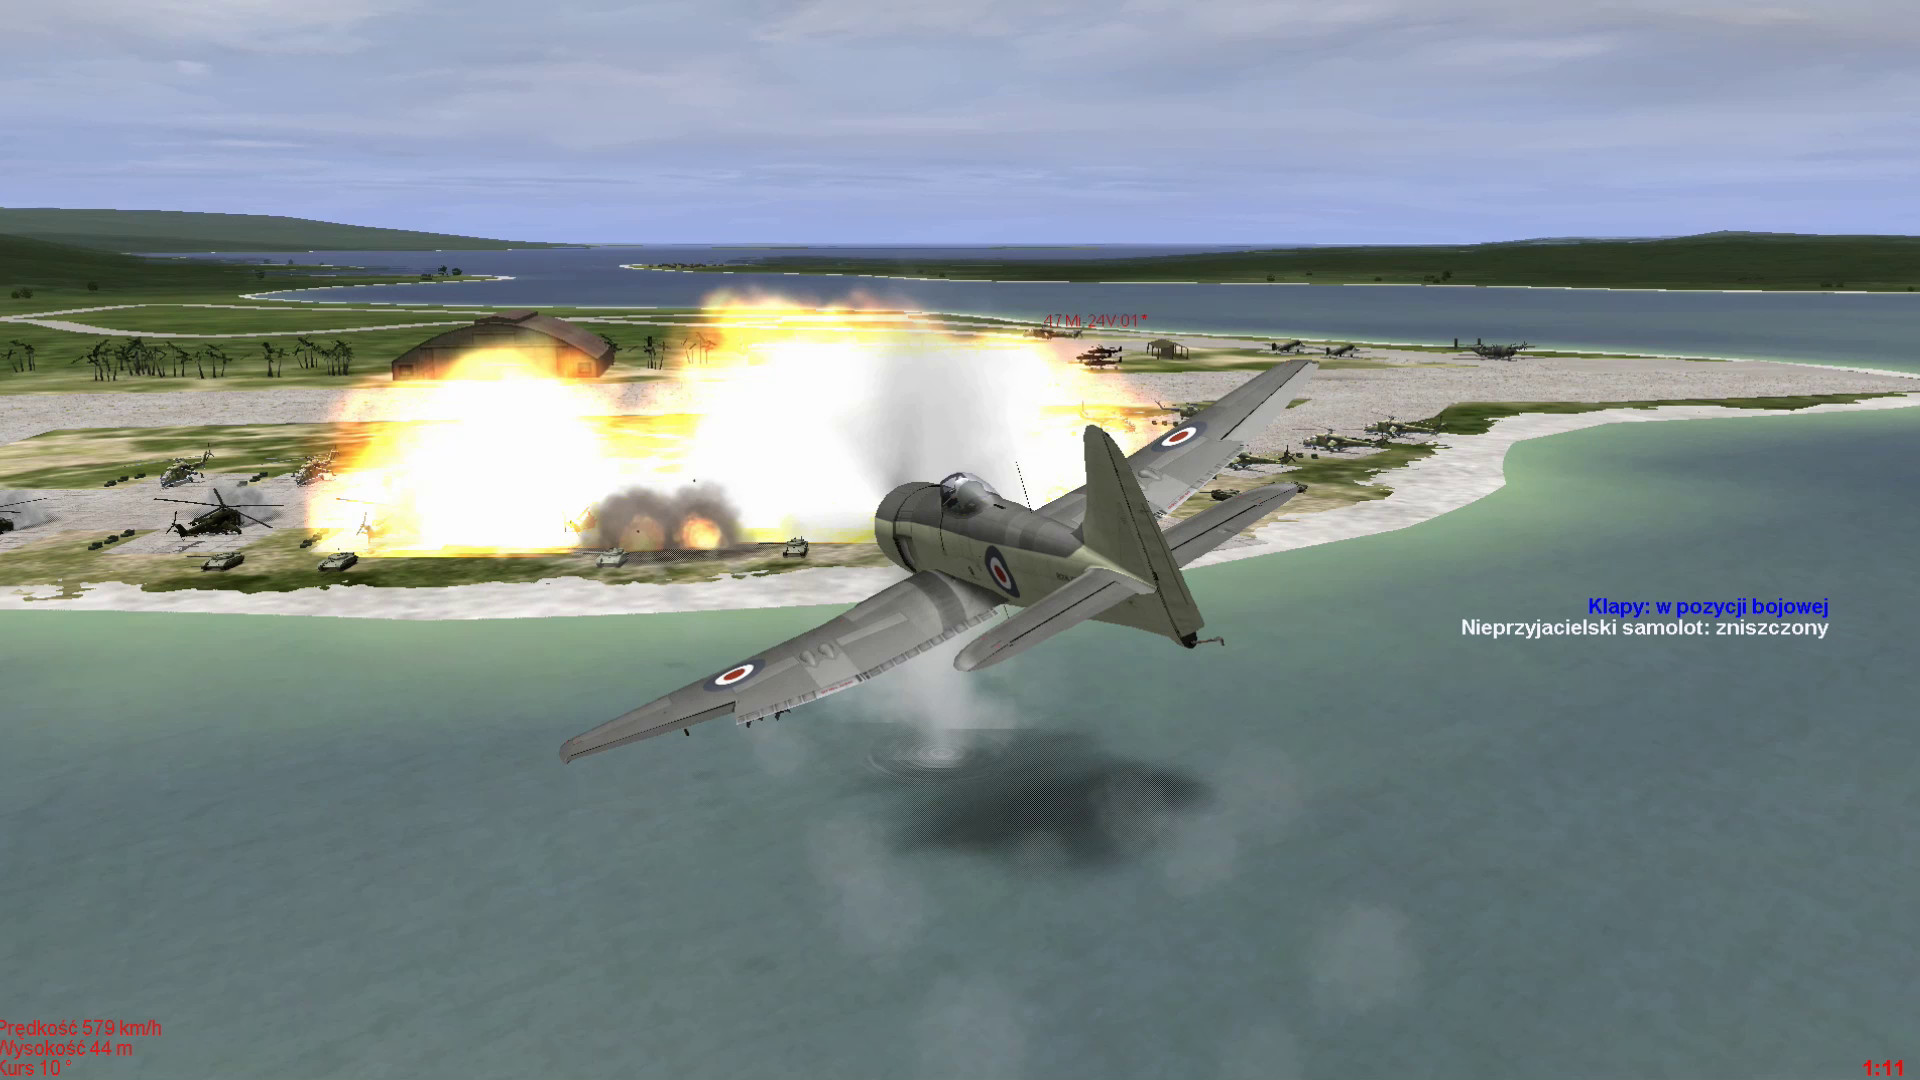 Hawker Sea Fury versus Heli Base